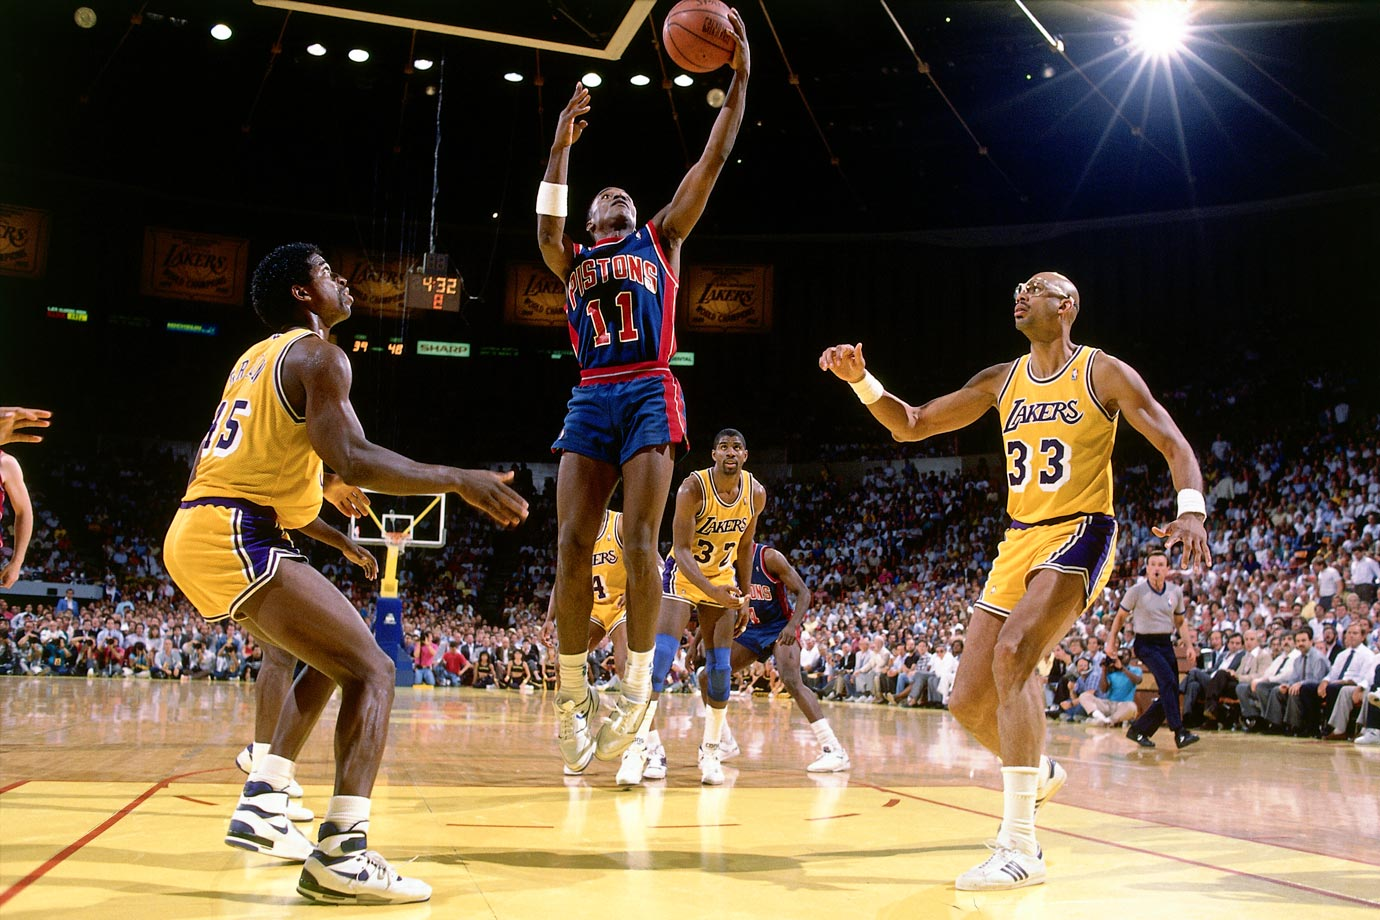 Playing on a severely sprained ankle, Isiah Thomas scored 25 points in the third quarter and almost single-handedly carried Detroit to a series-clinching victory. (The Lakers won the game and the next one, too).